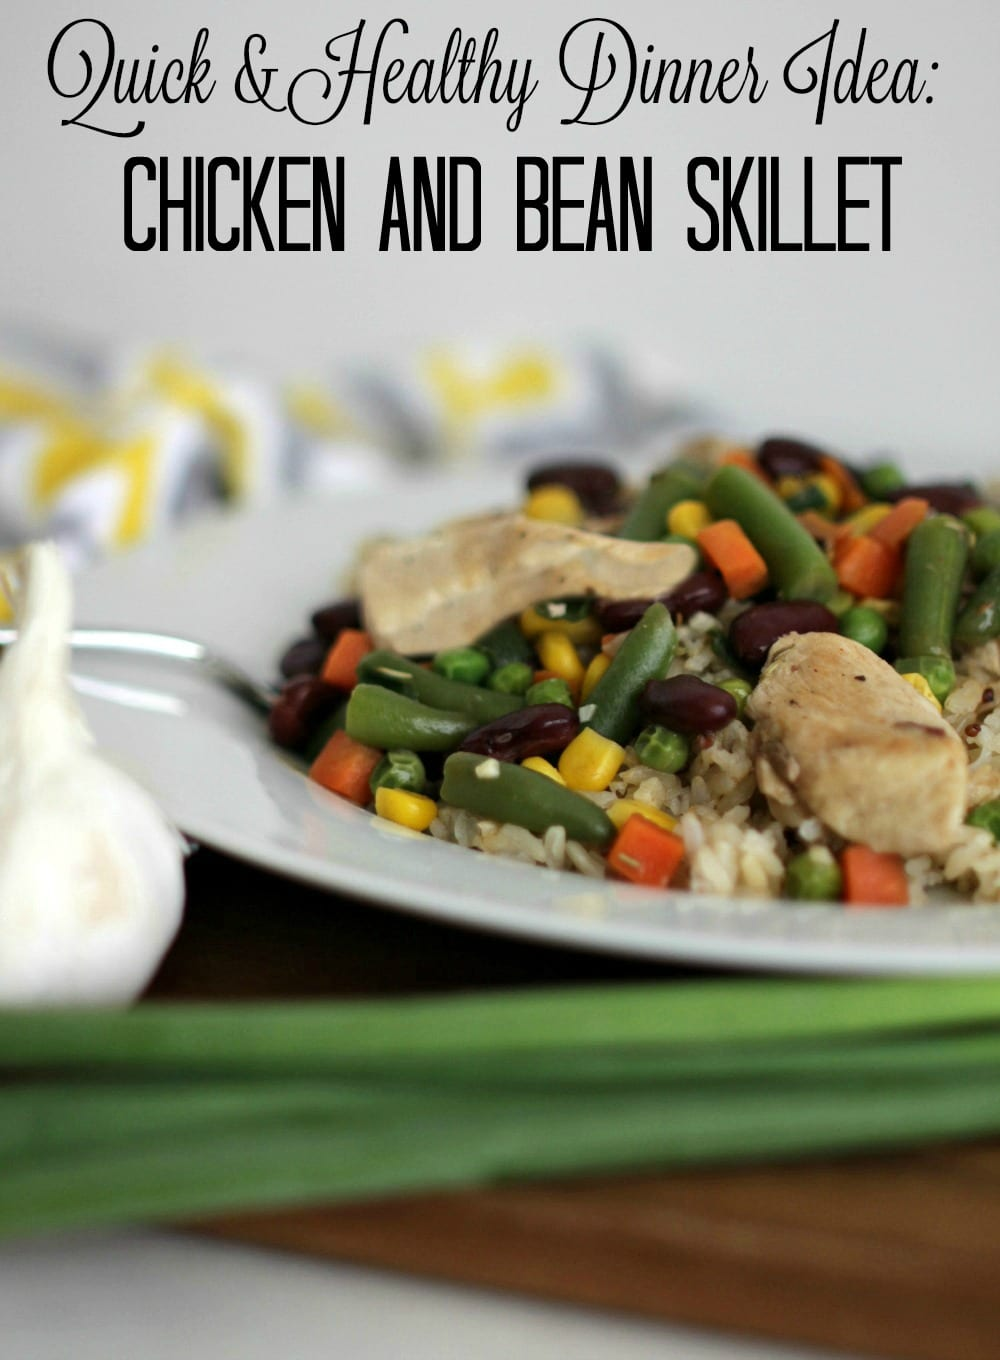 Quick & Healthy Dinner Idea: Chicken and Bean Skillet